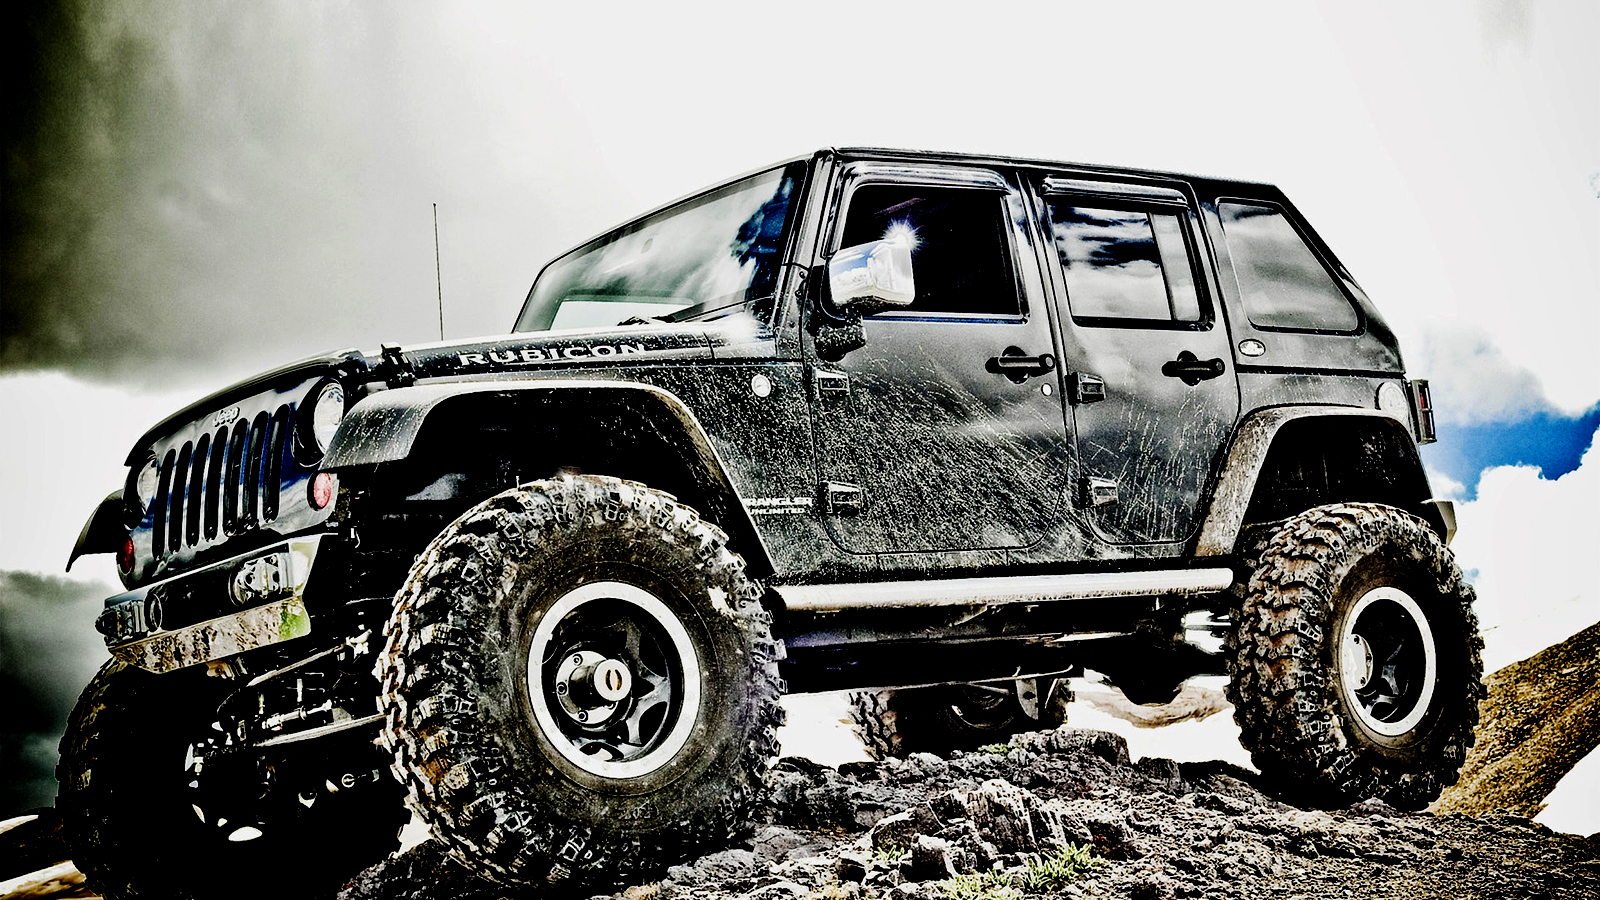 Off Road Vehicles 4X4 Jeeps HD Wallpapers| HD Wallpapers ,Backgrounds ,Photos ,Pictures, Image ,PC